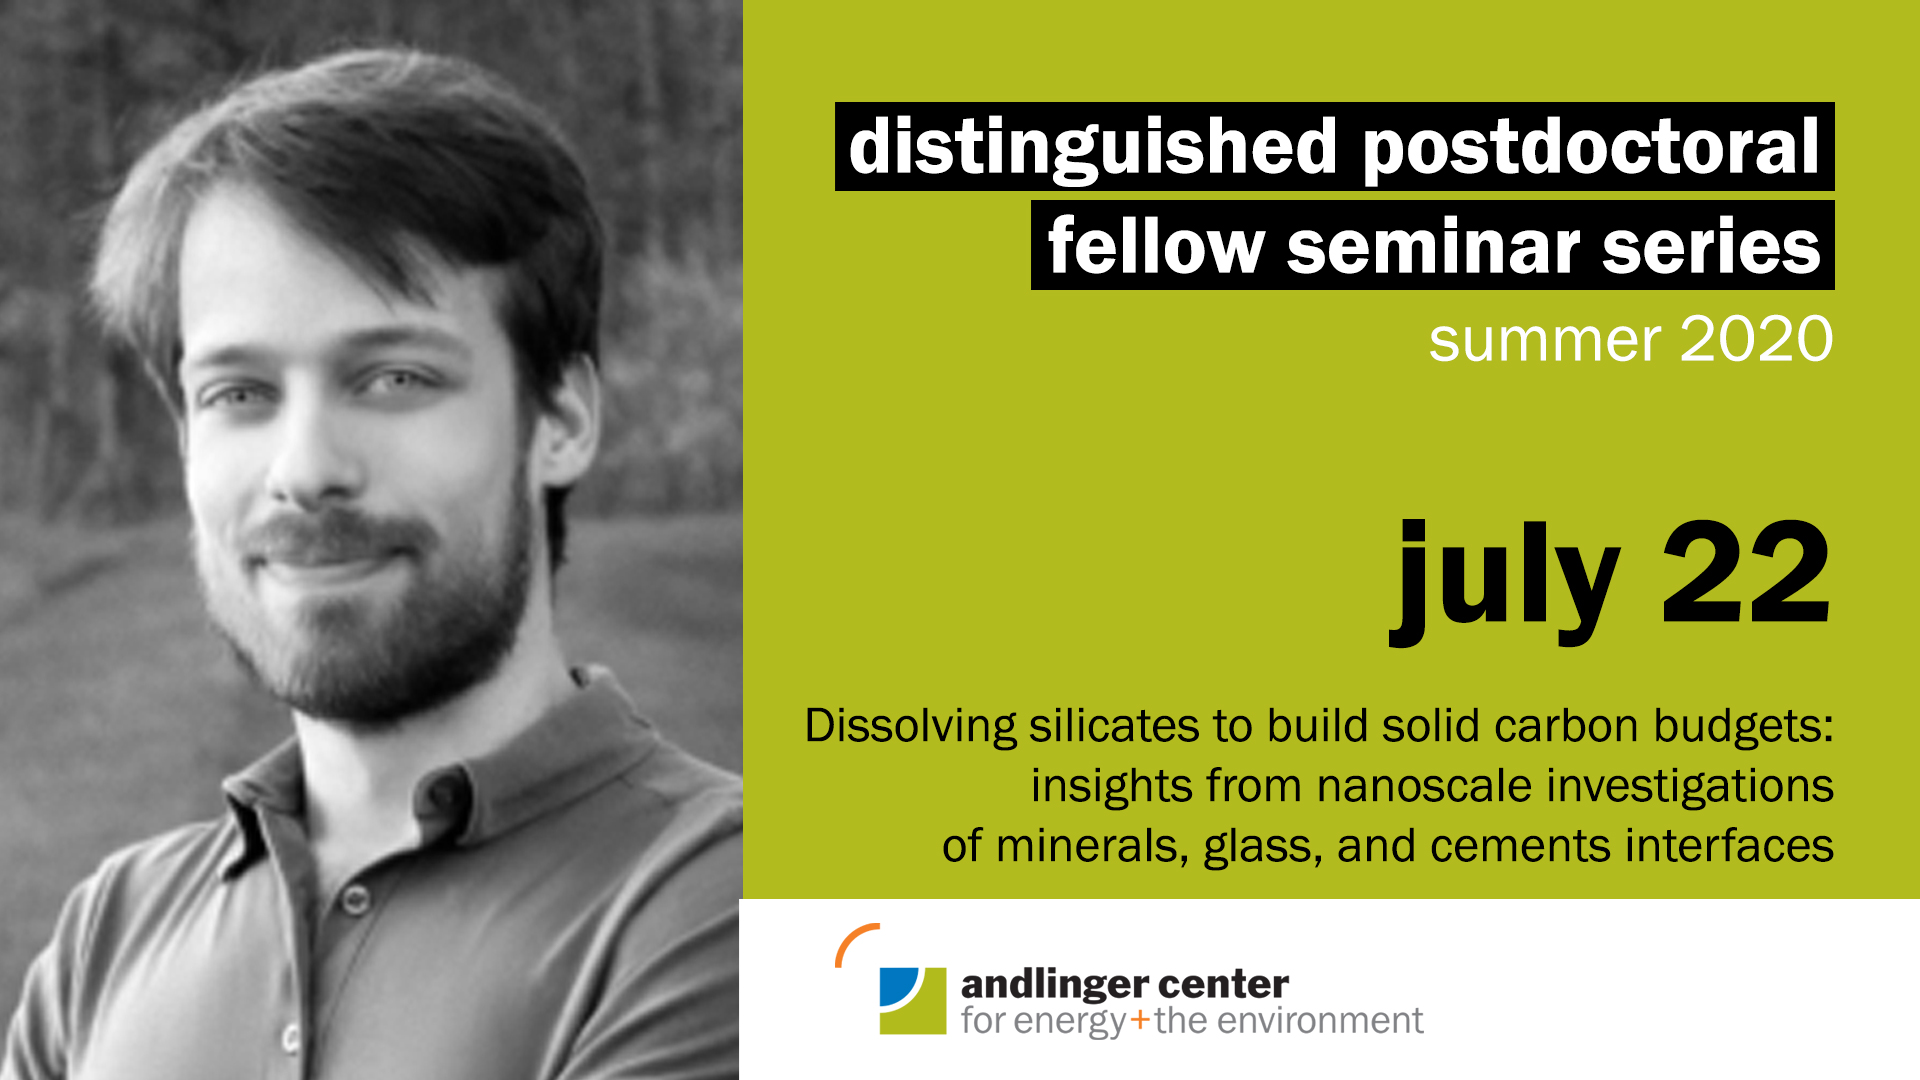 July 22 at 2pmWild focuses on the mechanisms underlying the alteration of silicate materials, including minerals, glasses, and cements. In particular, silicate alteration rates have important implications for the long-term carbon cycle, the durability of urban infrastructure, and the feasibility of several low-carbon energy technologies, including green cements, carbon capture and storage, and radioactive waste storage.Website